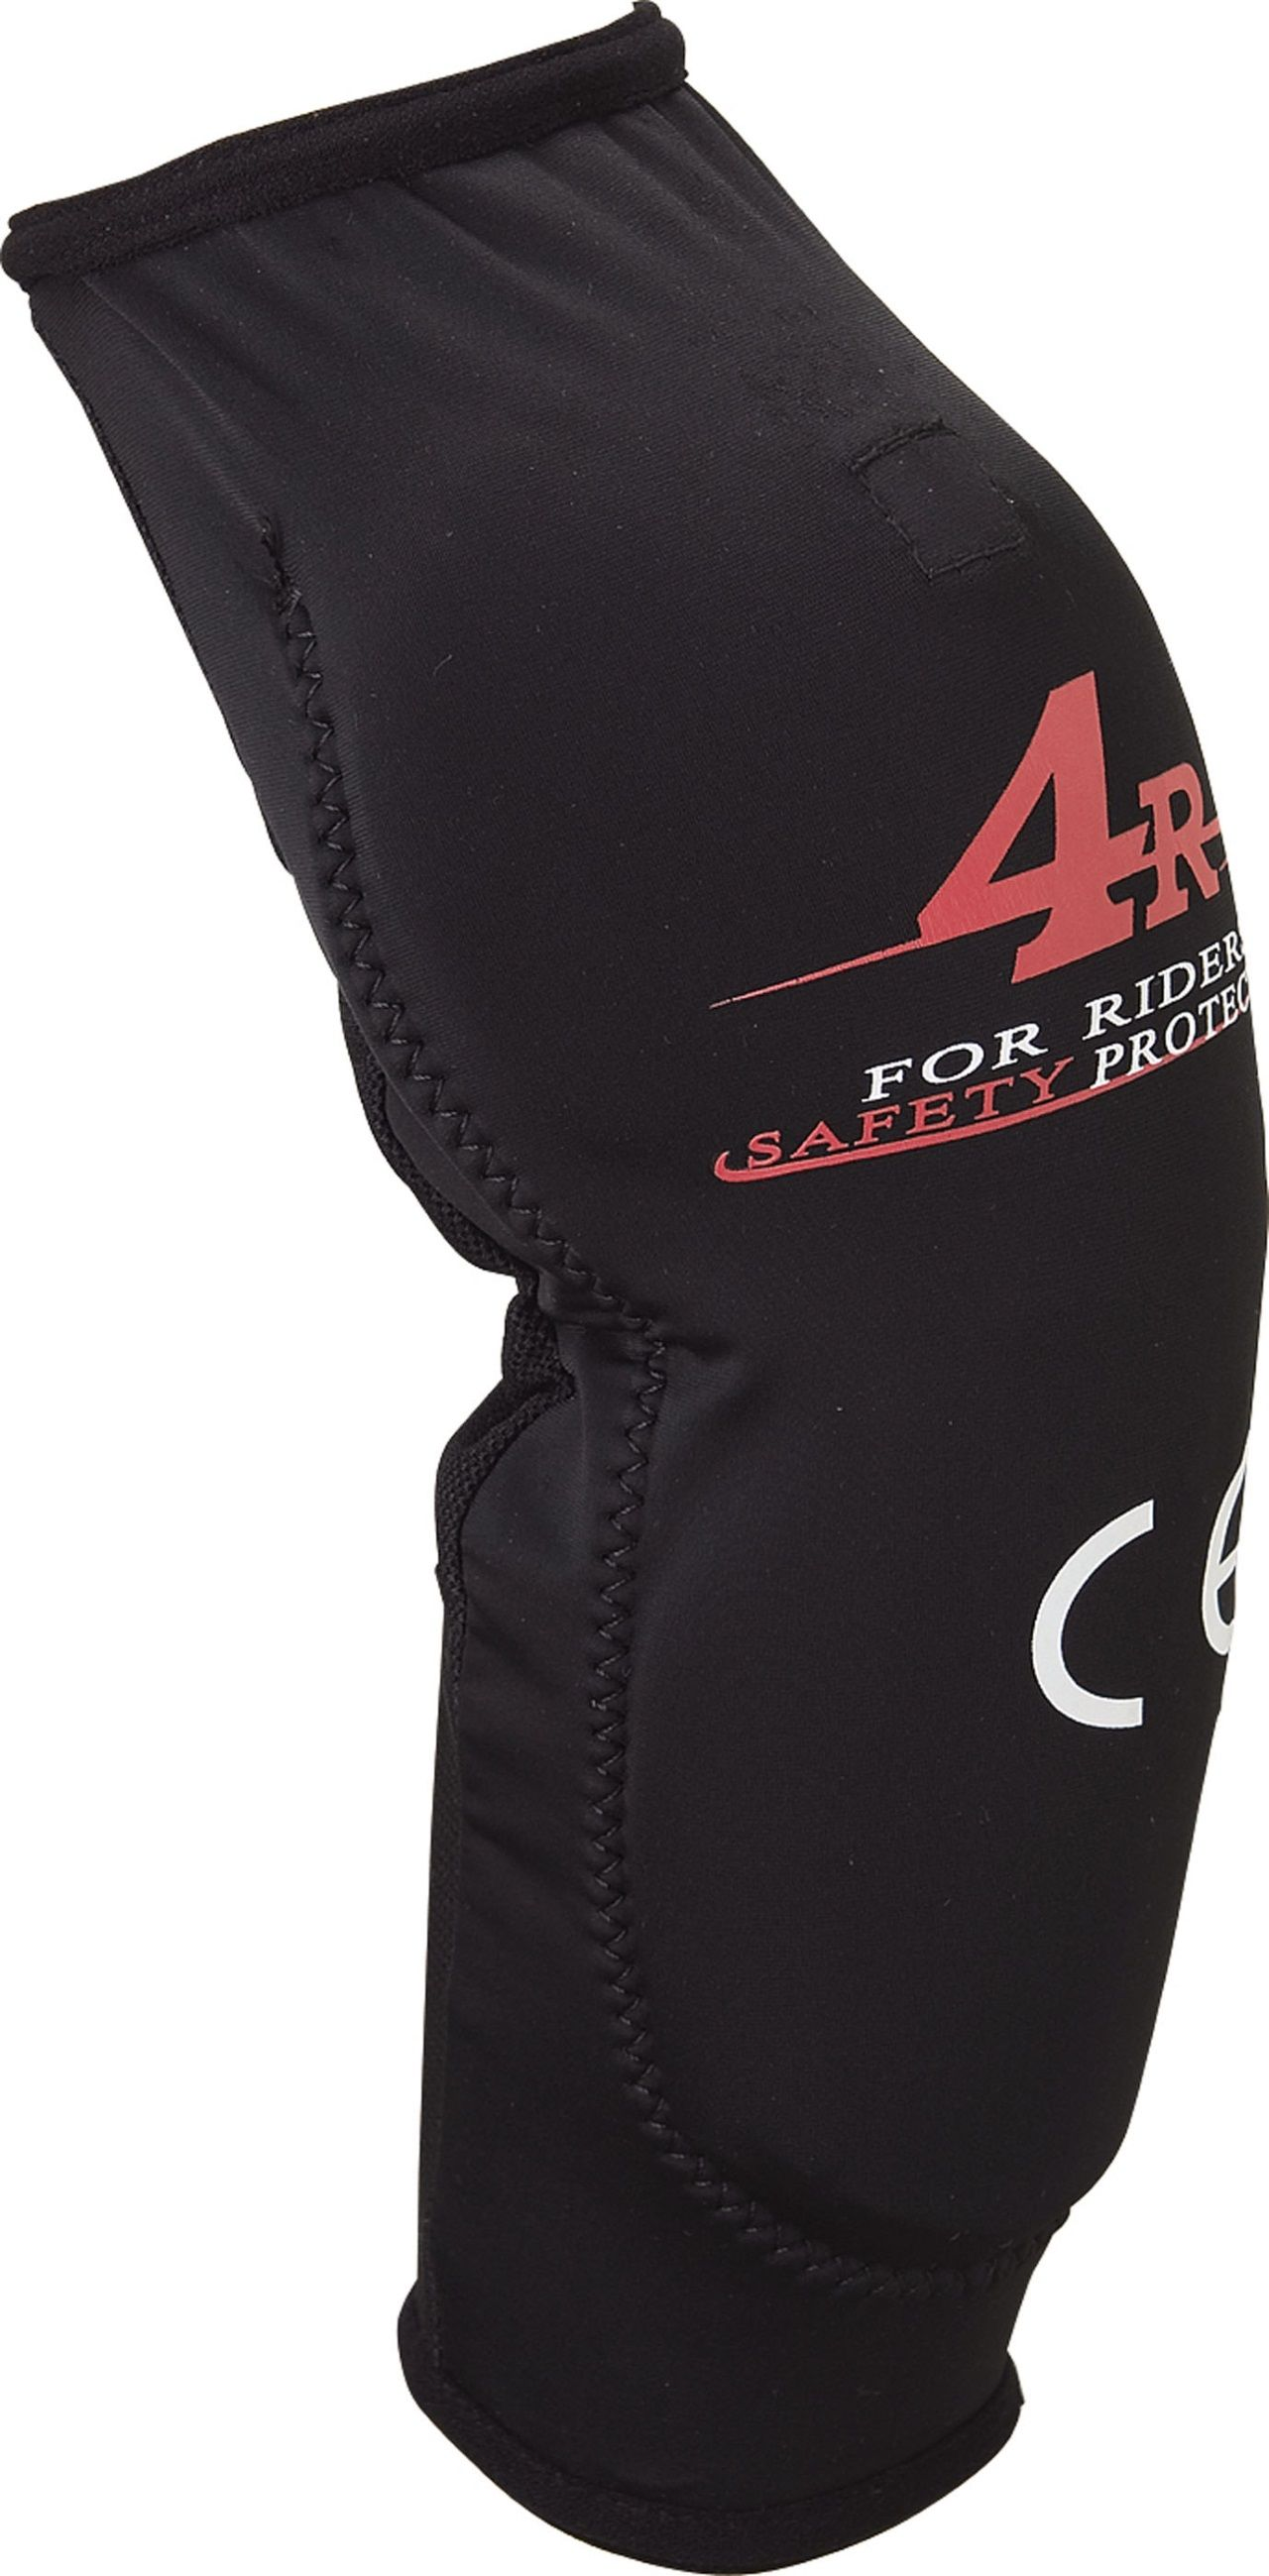 KIJIMA 4R Protector Relieve Soft Elbow